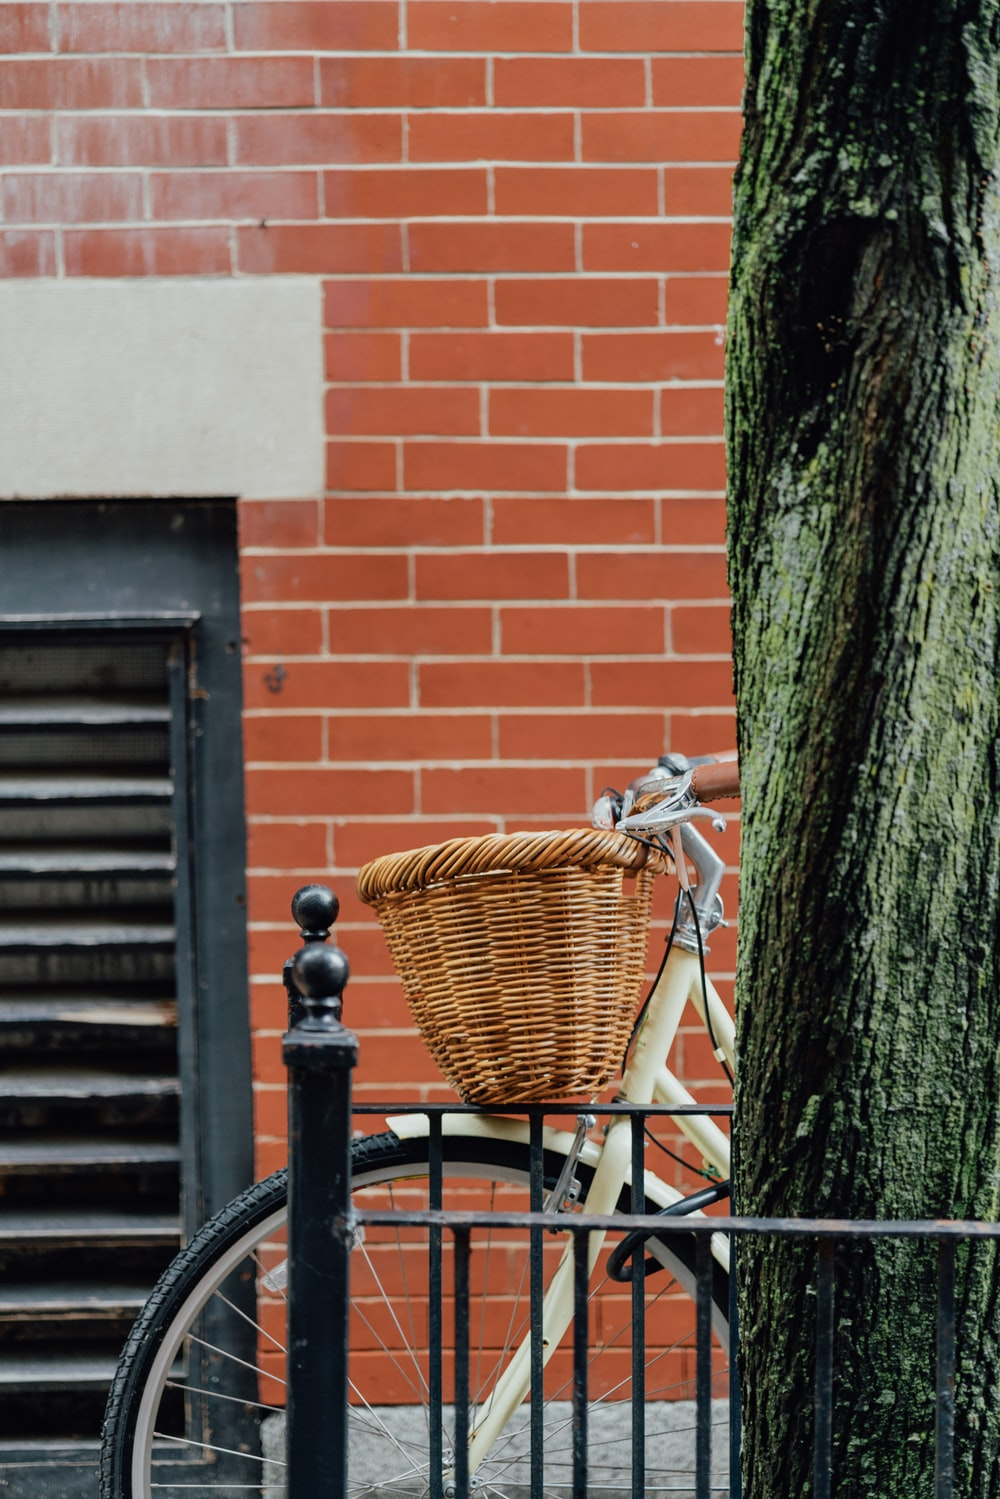 bicycle with woven basket parked beside the street